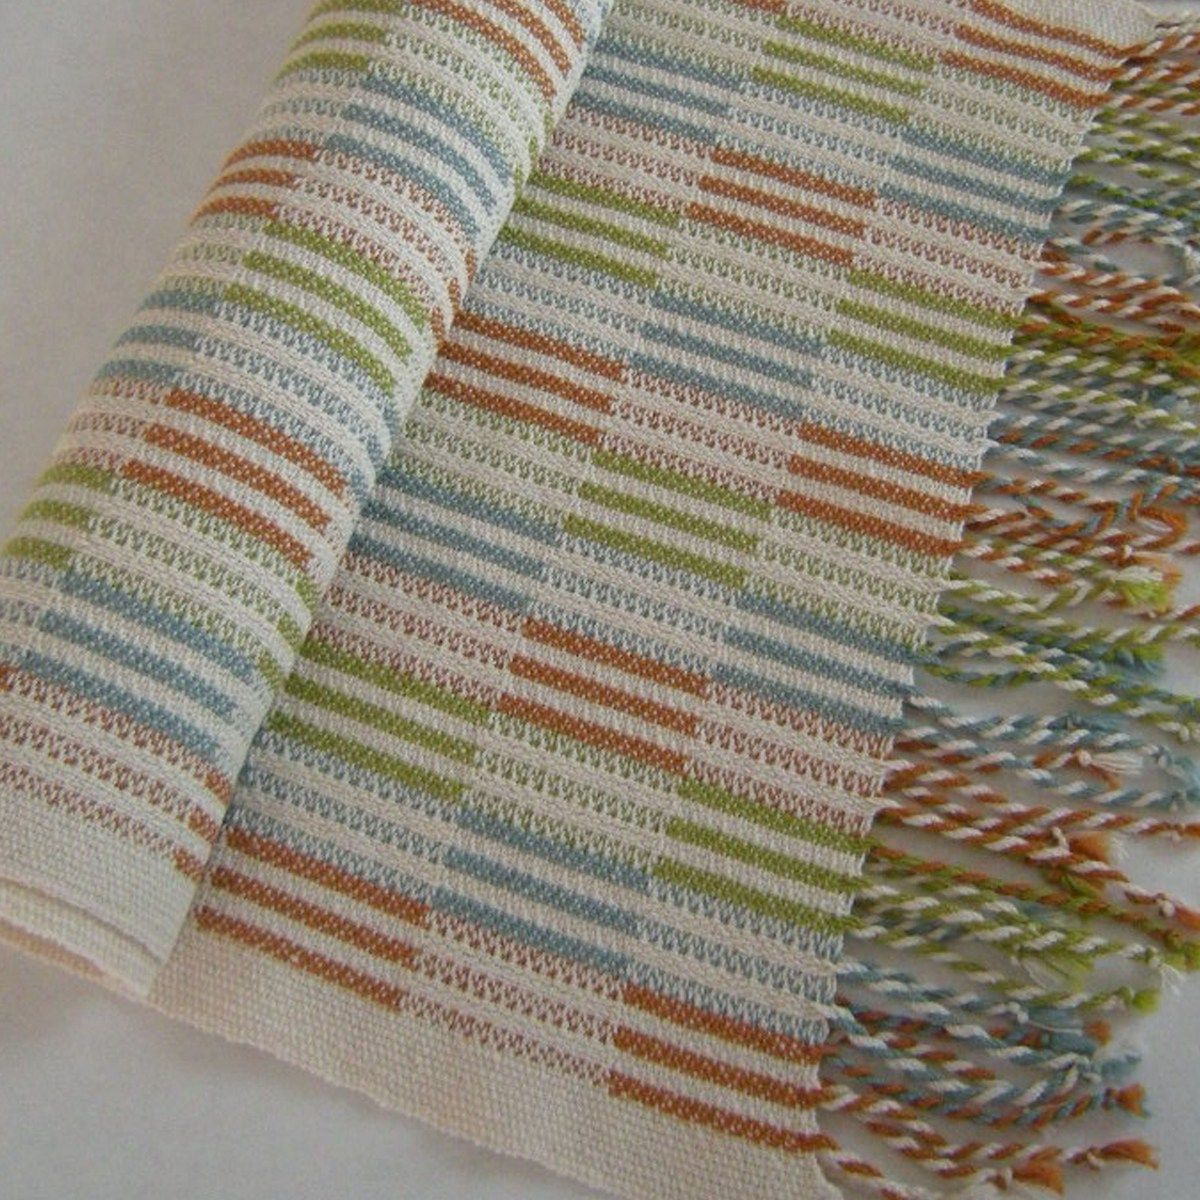 wonderful use of color in block twill